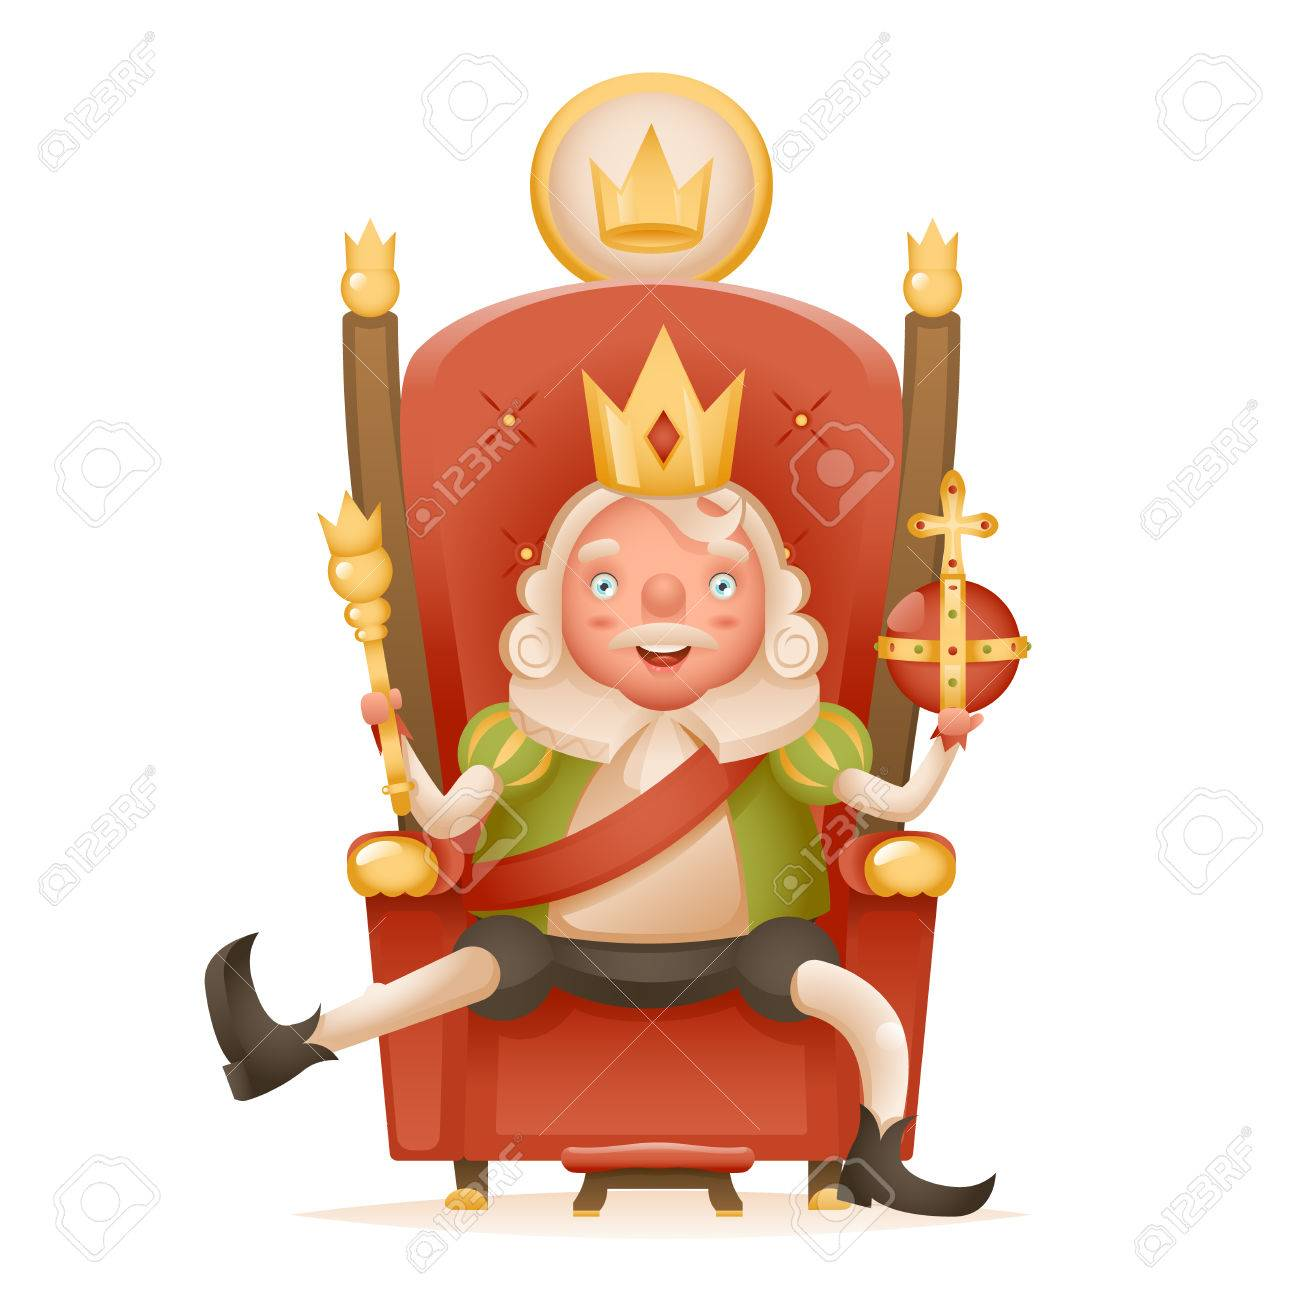 1299x1300 Cute Cheerful King Ruler On Throne Crown On Head Power And Scepter